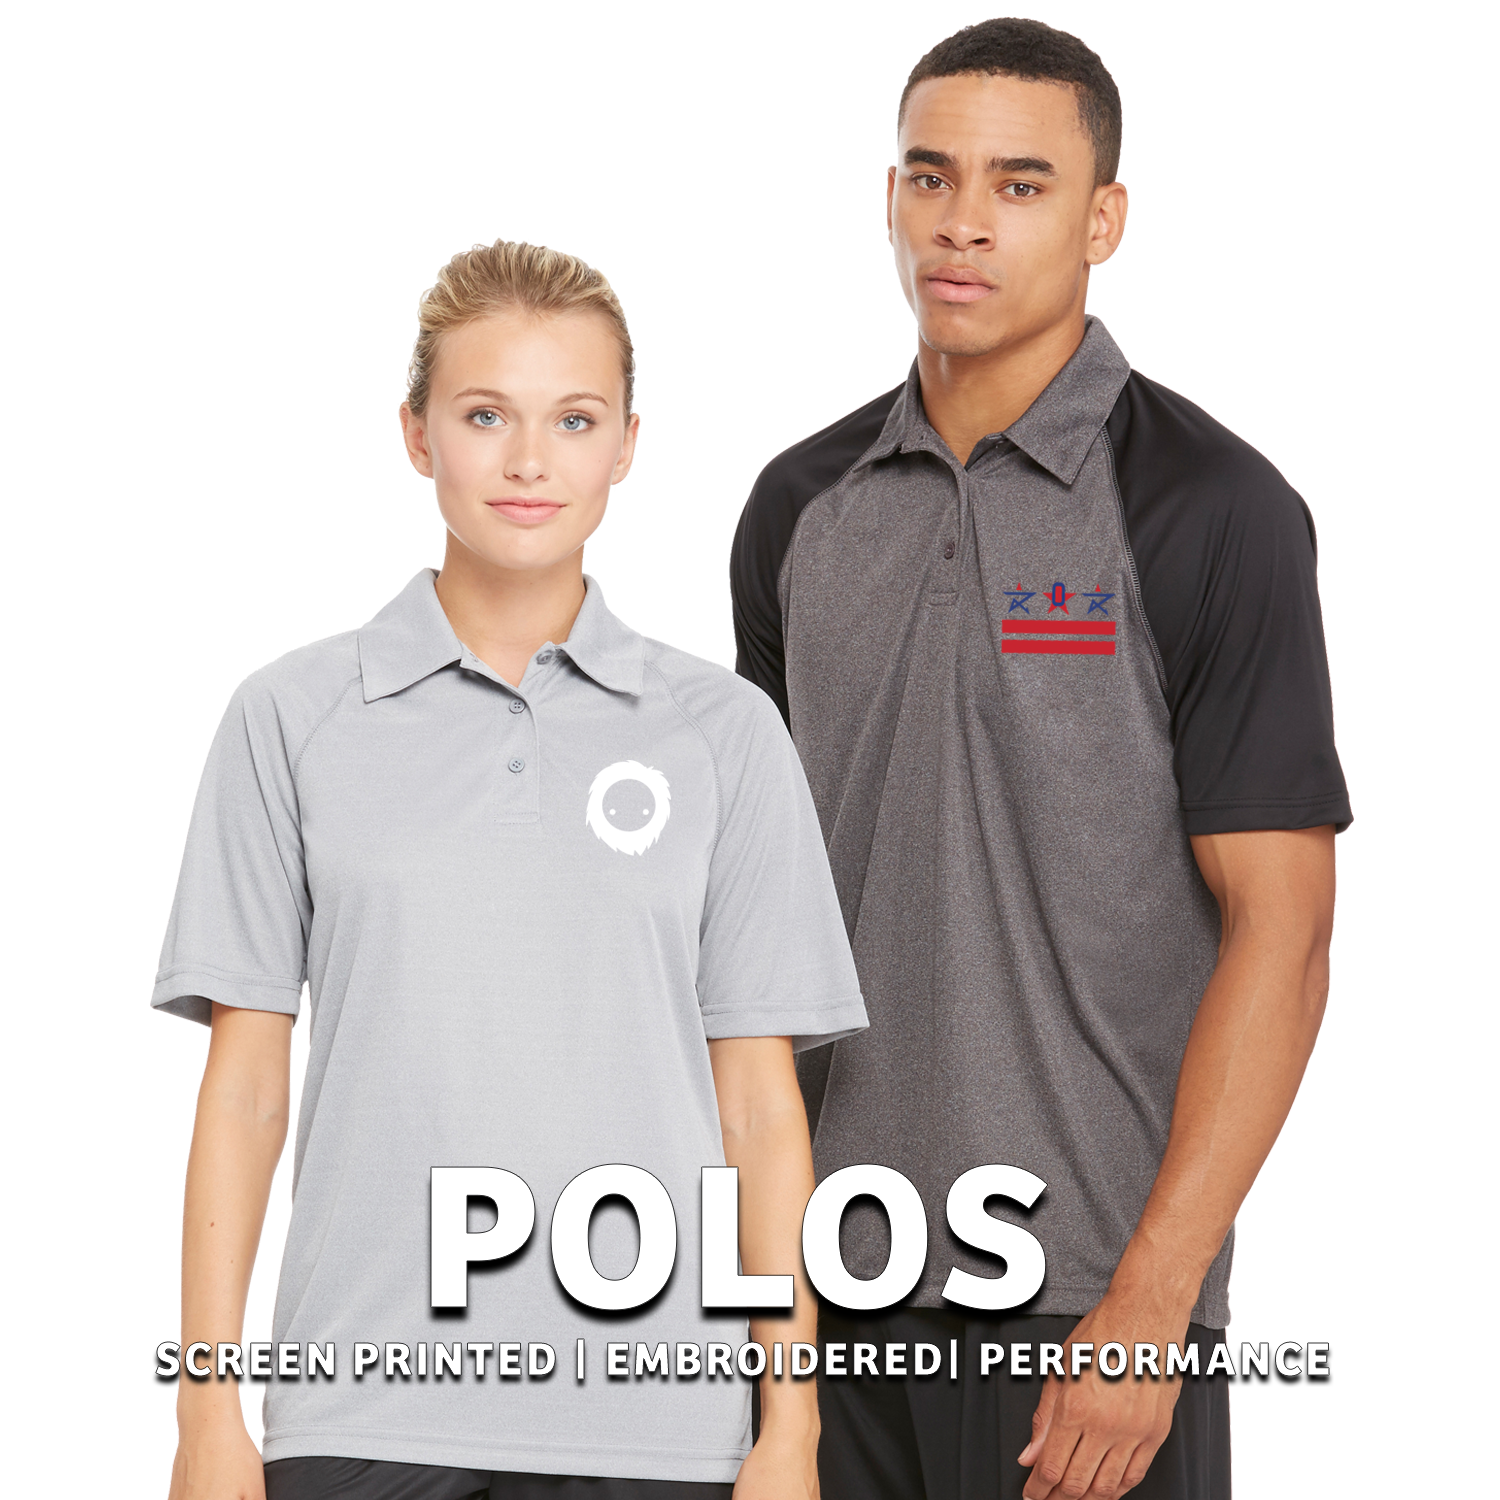 polos1.png